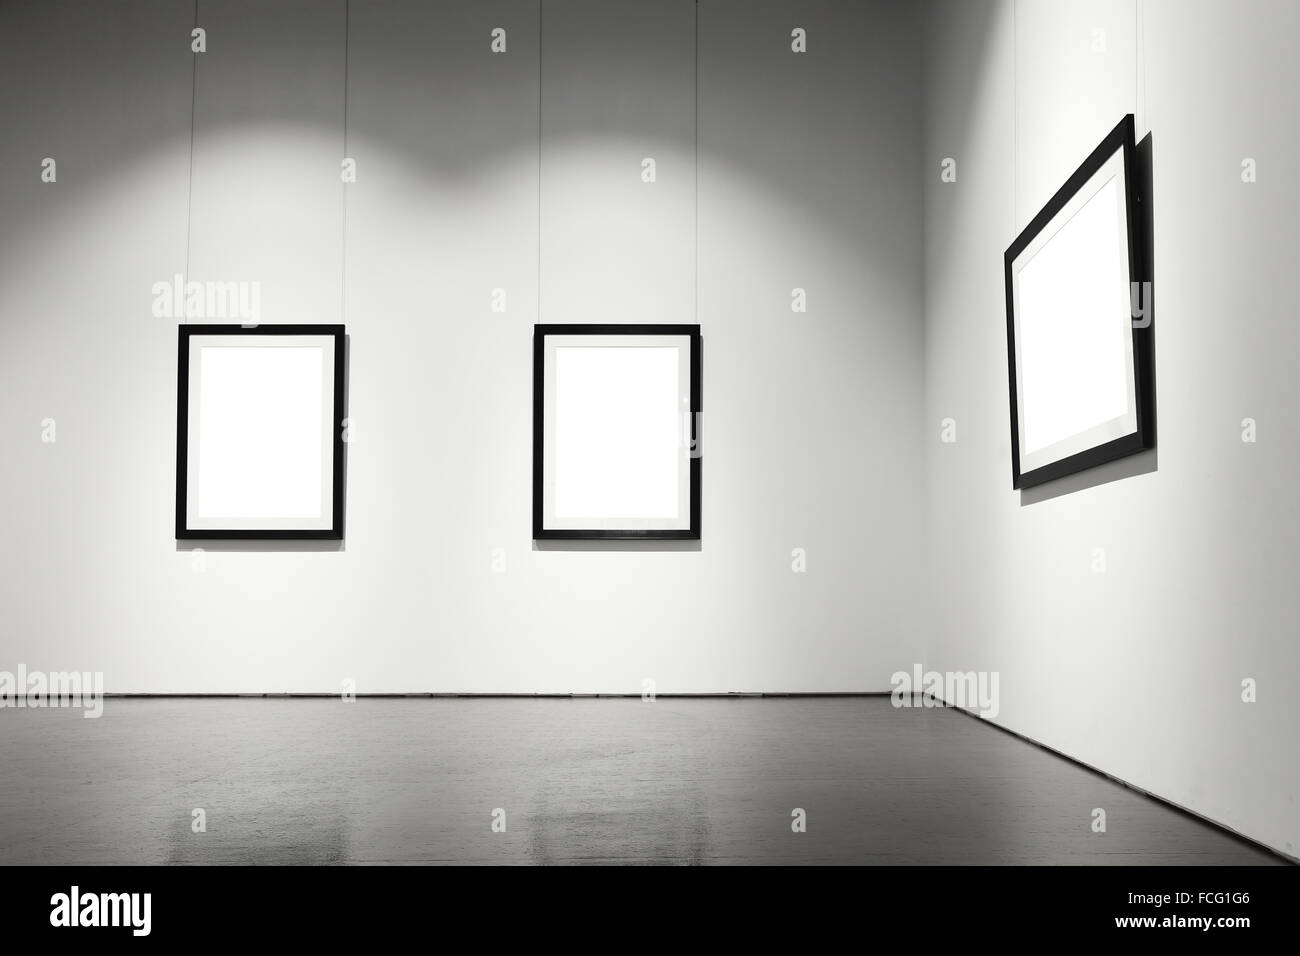 Exhibition hall with empty frames on wall Stock Photo: 93780182 - Alamy